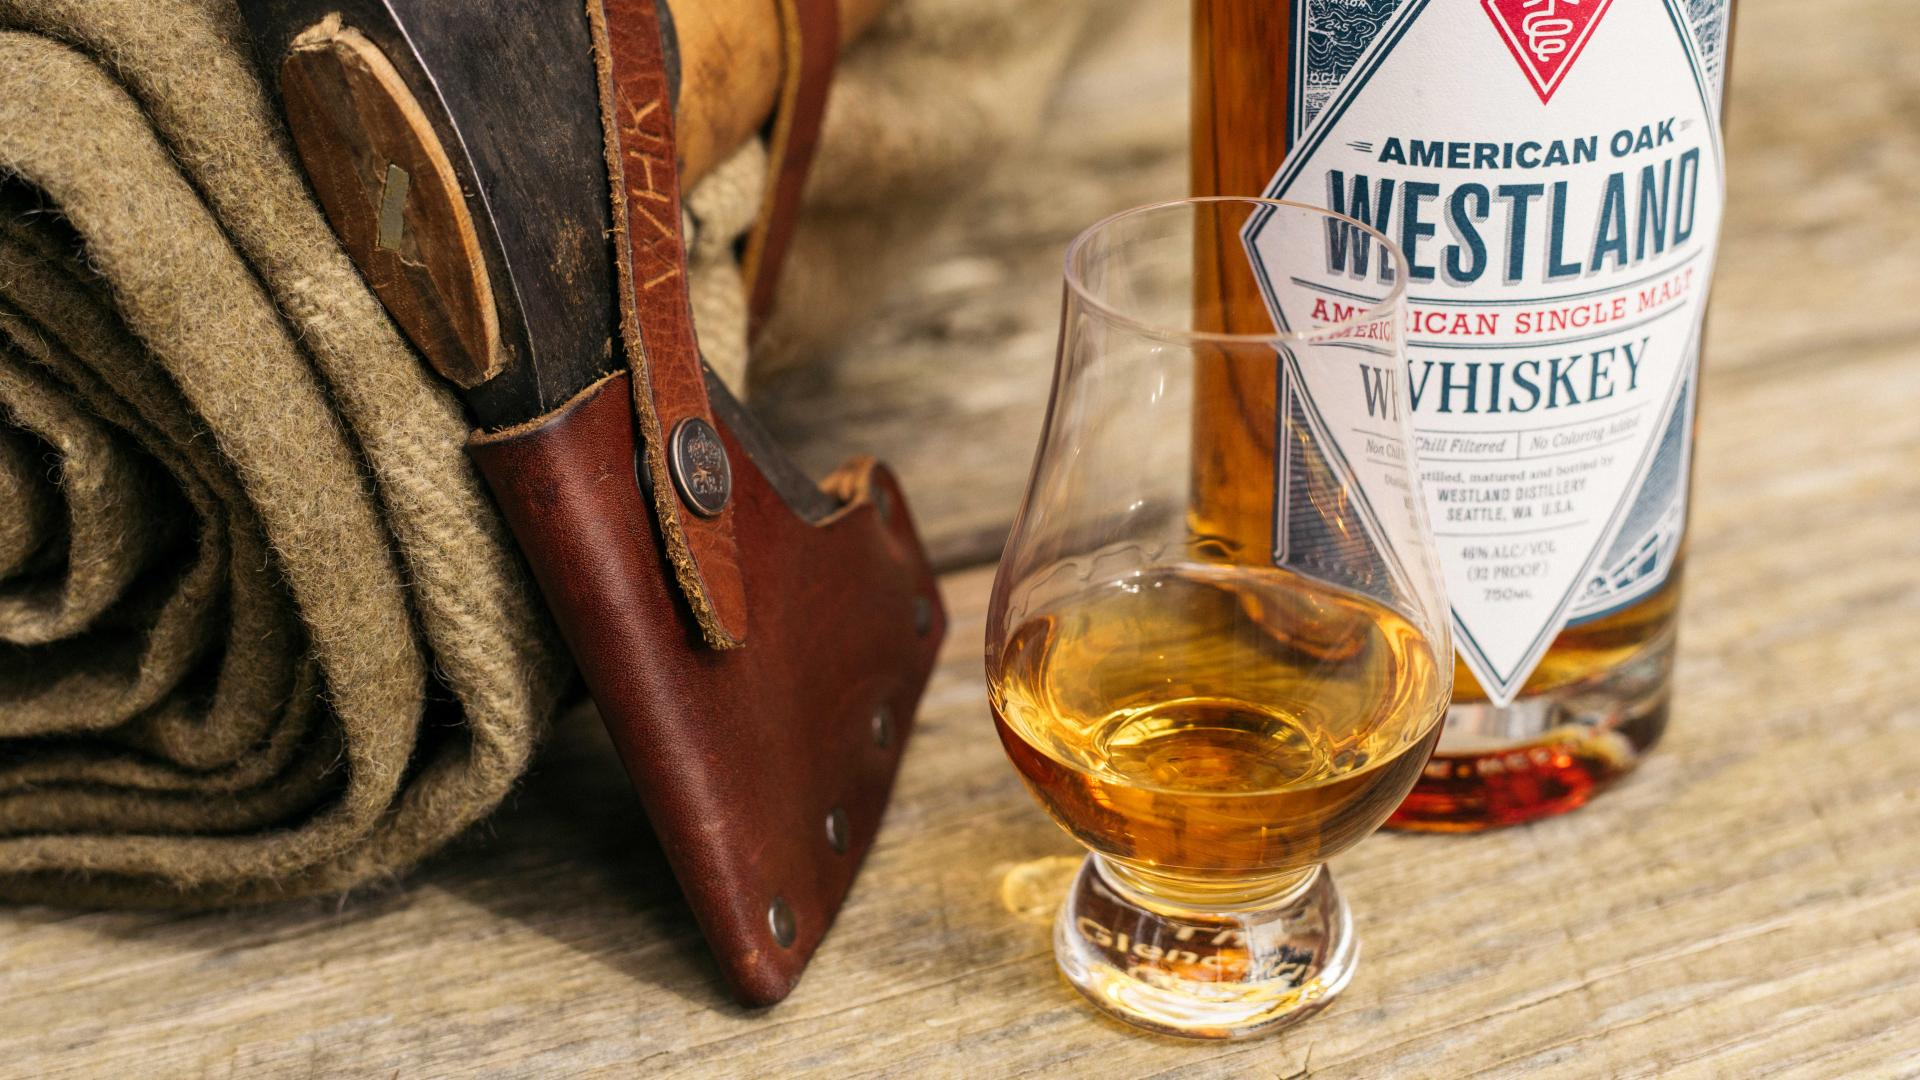 Father's Day 2021 gift guide: Westmoreland American Whiskey